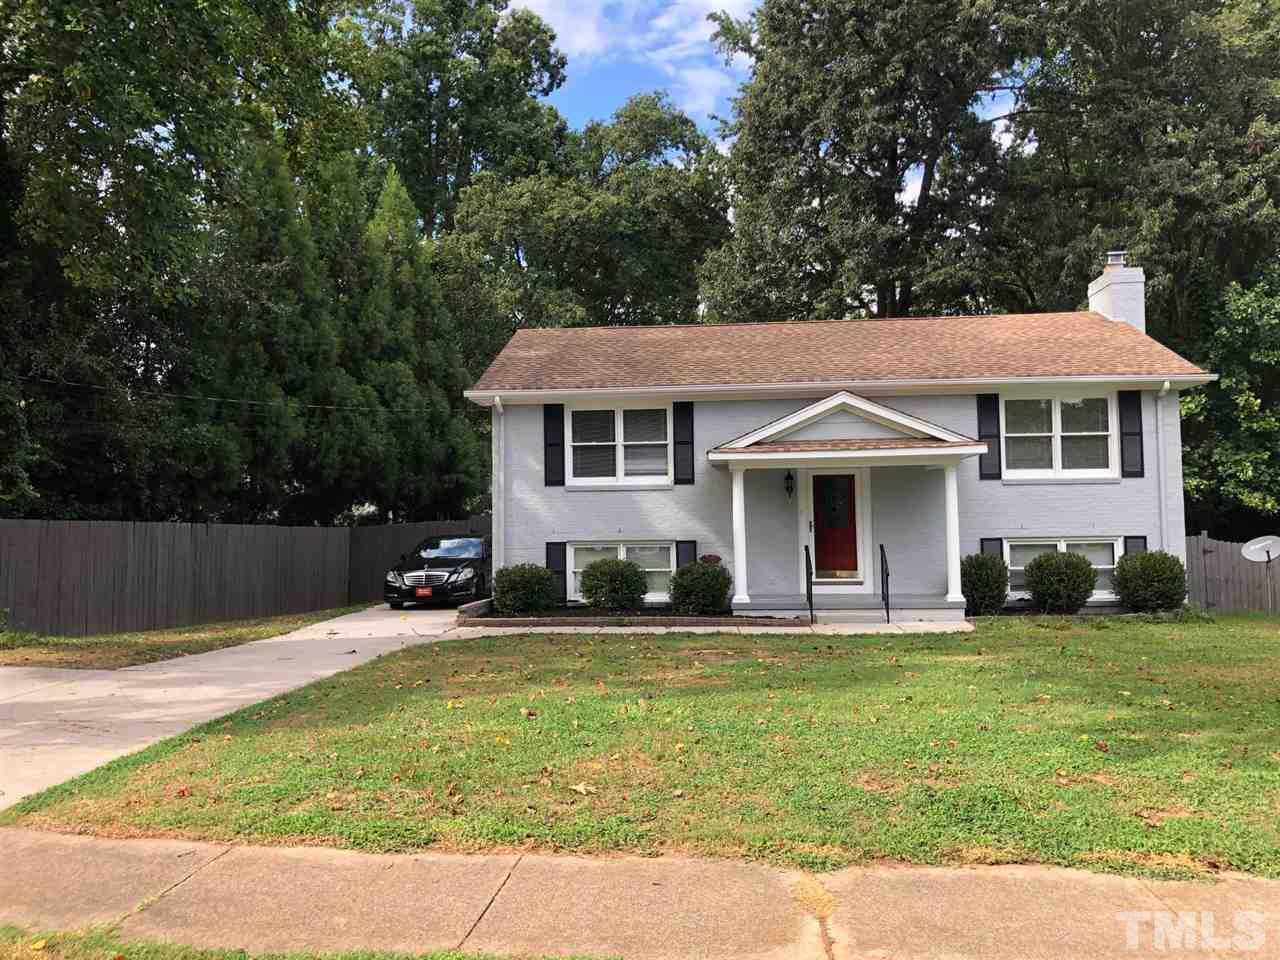 $2,195 - 3Br/2Ba -  for Sale in Lakemount, Raleigh